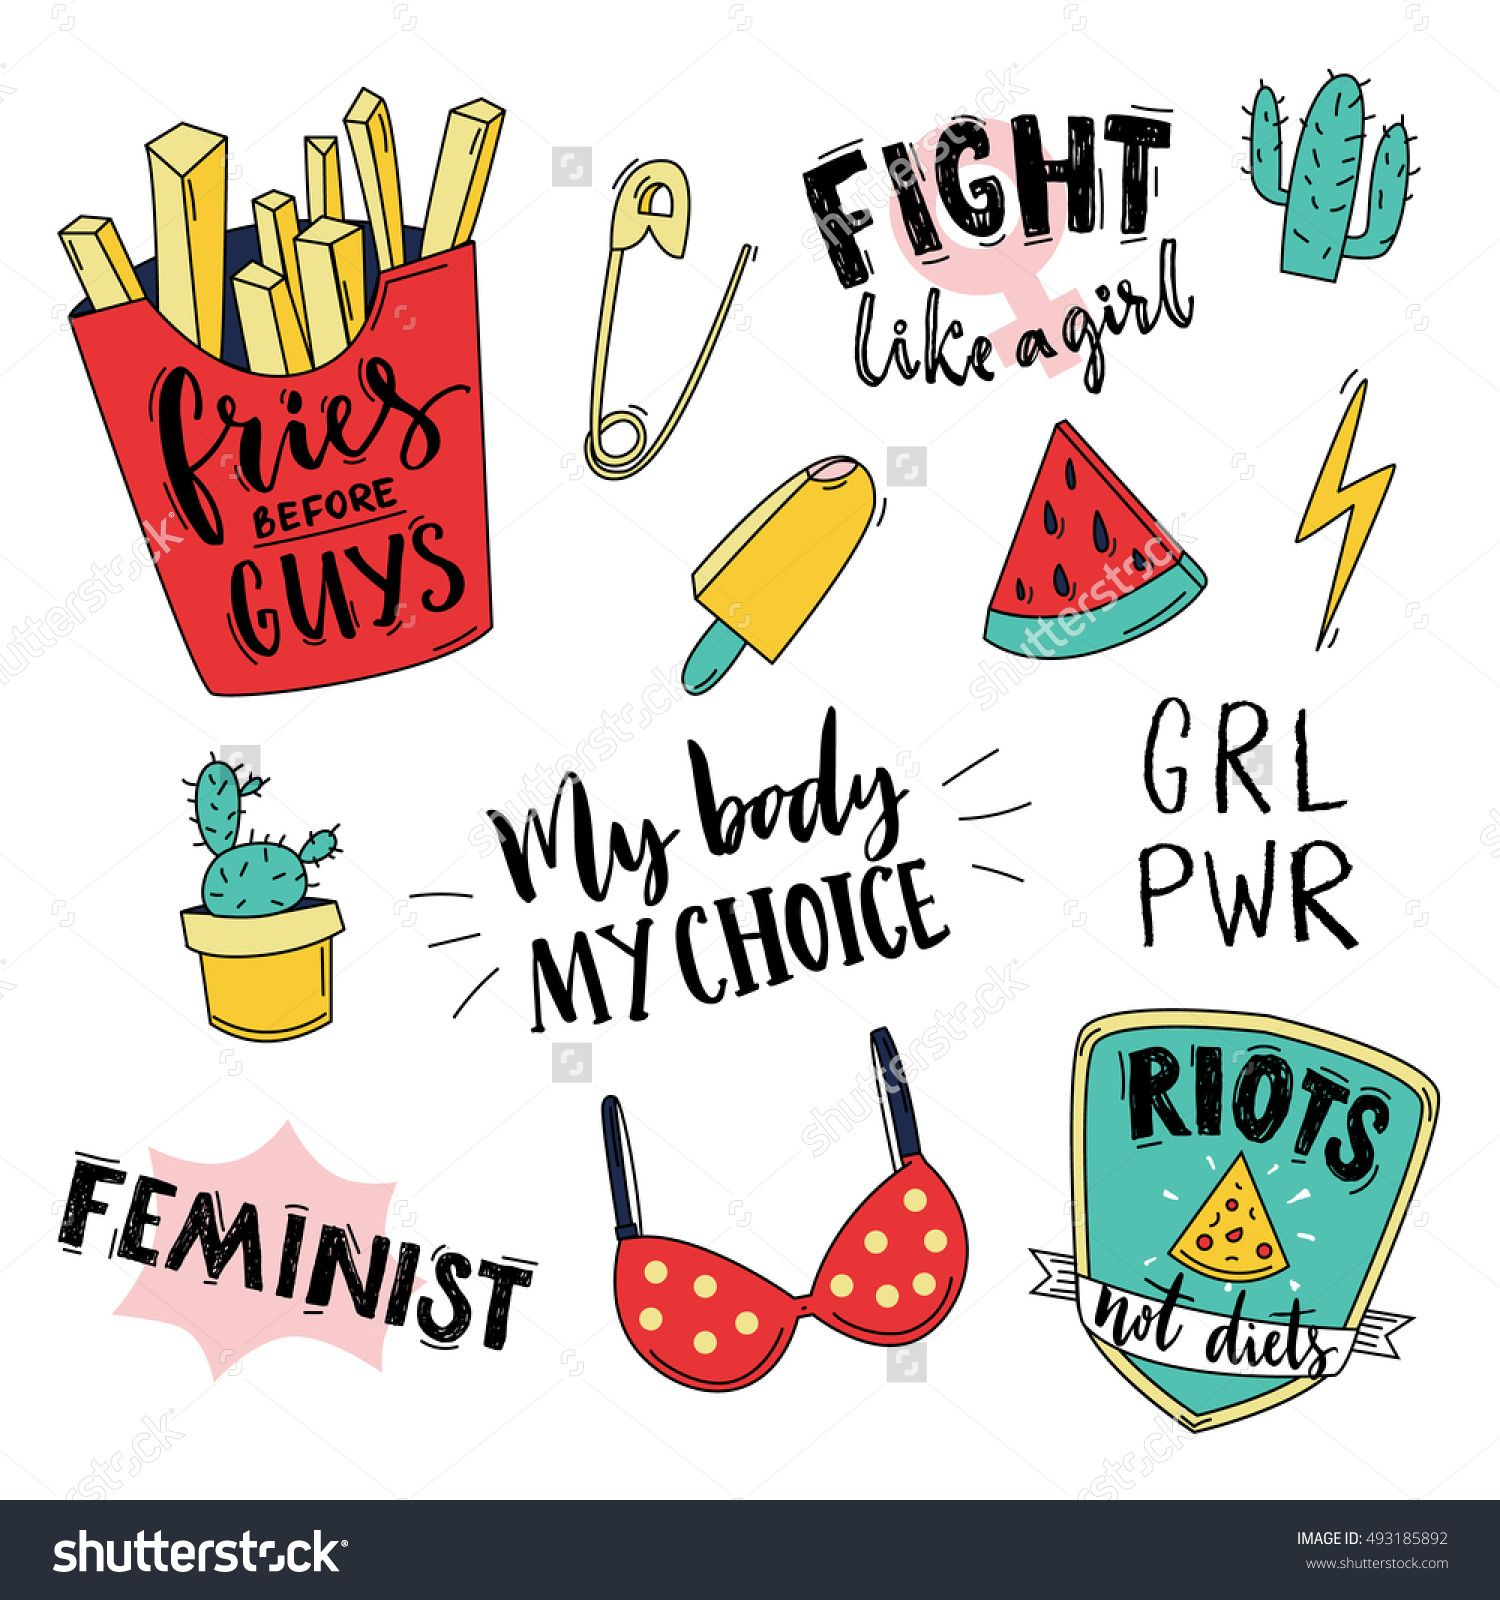 Feminism slogan and patches. Vector 80s style design